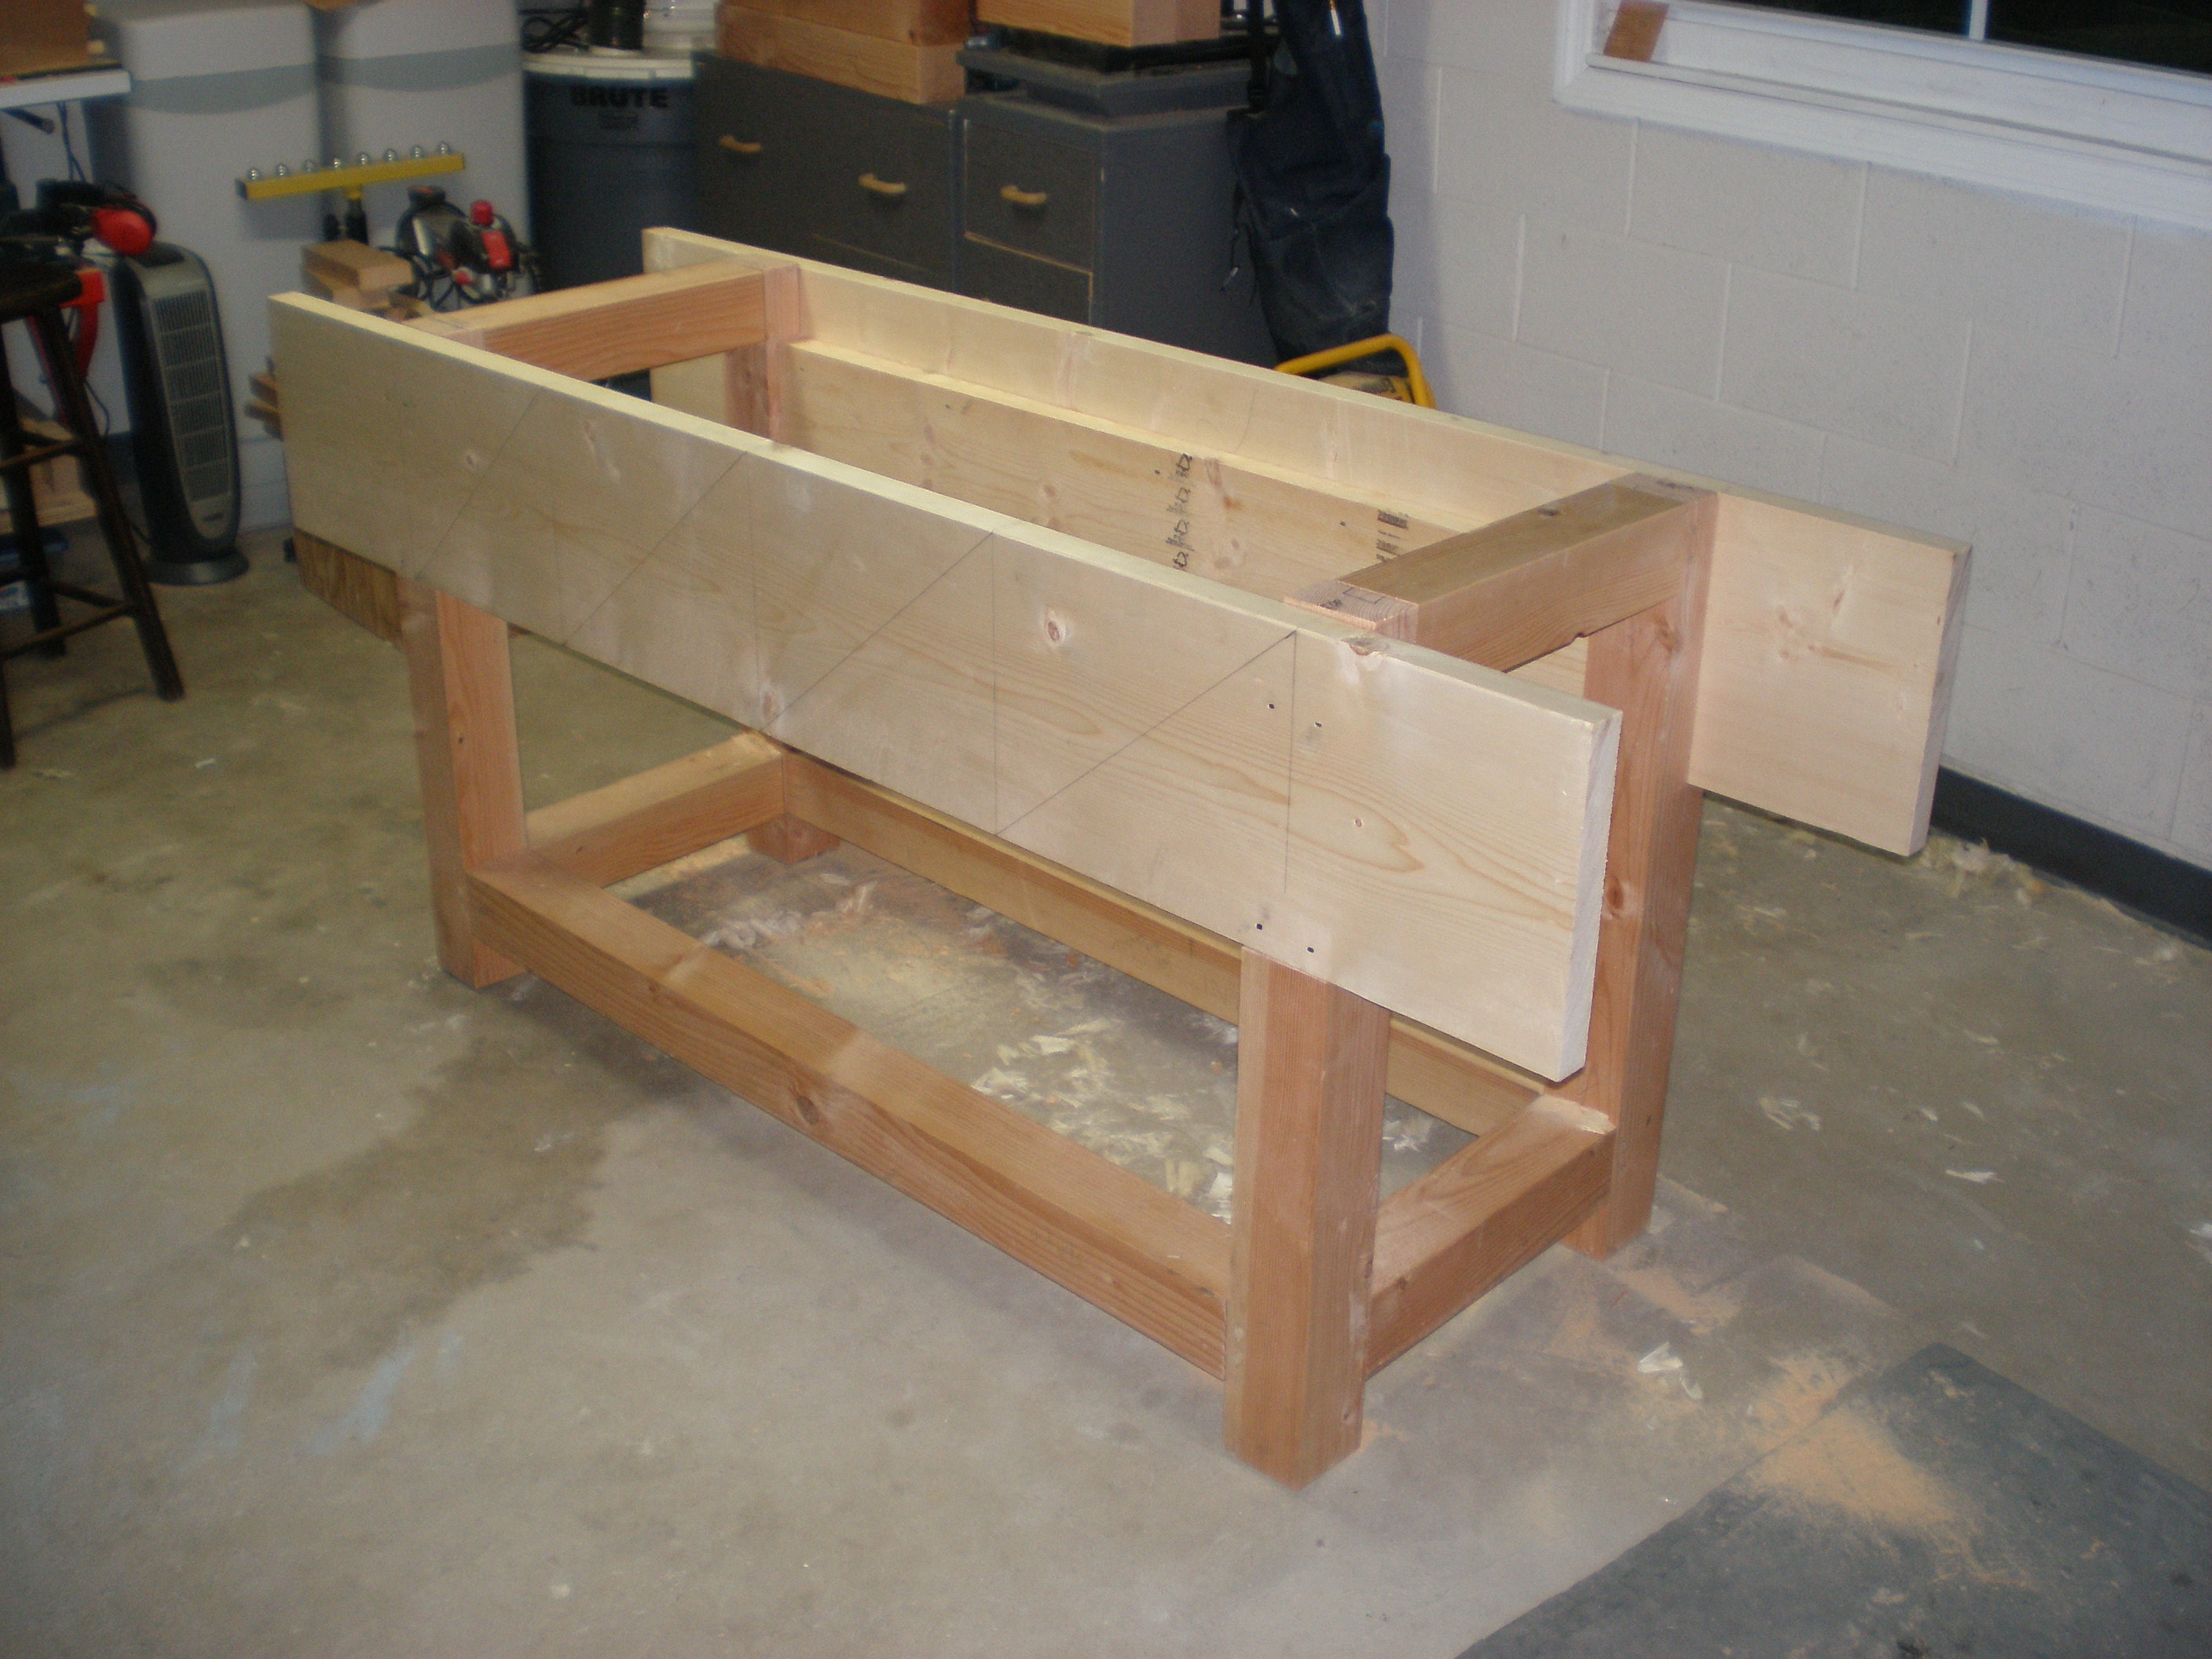 Woodworking woodworking bench parts PDF Free Download